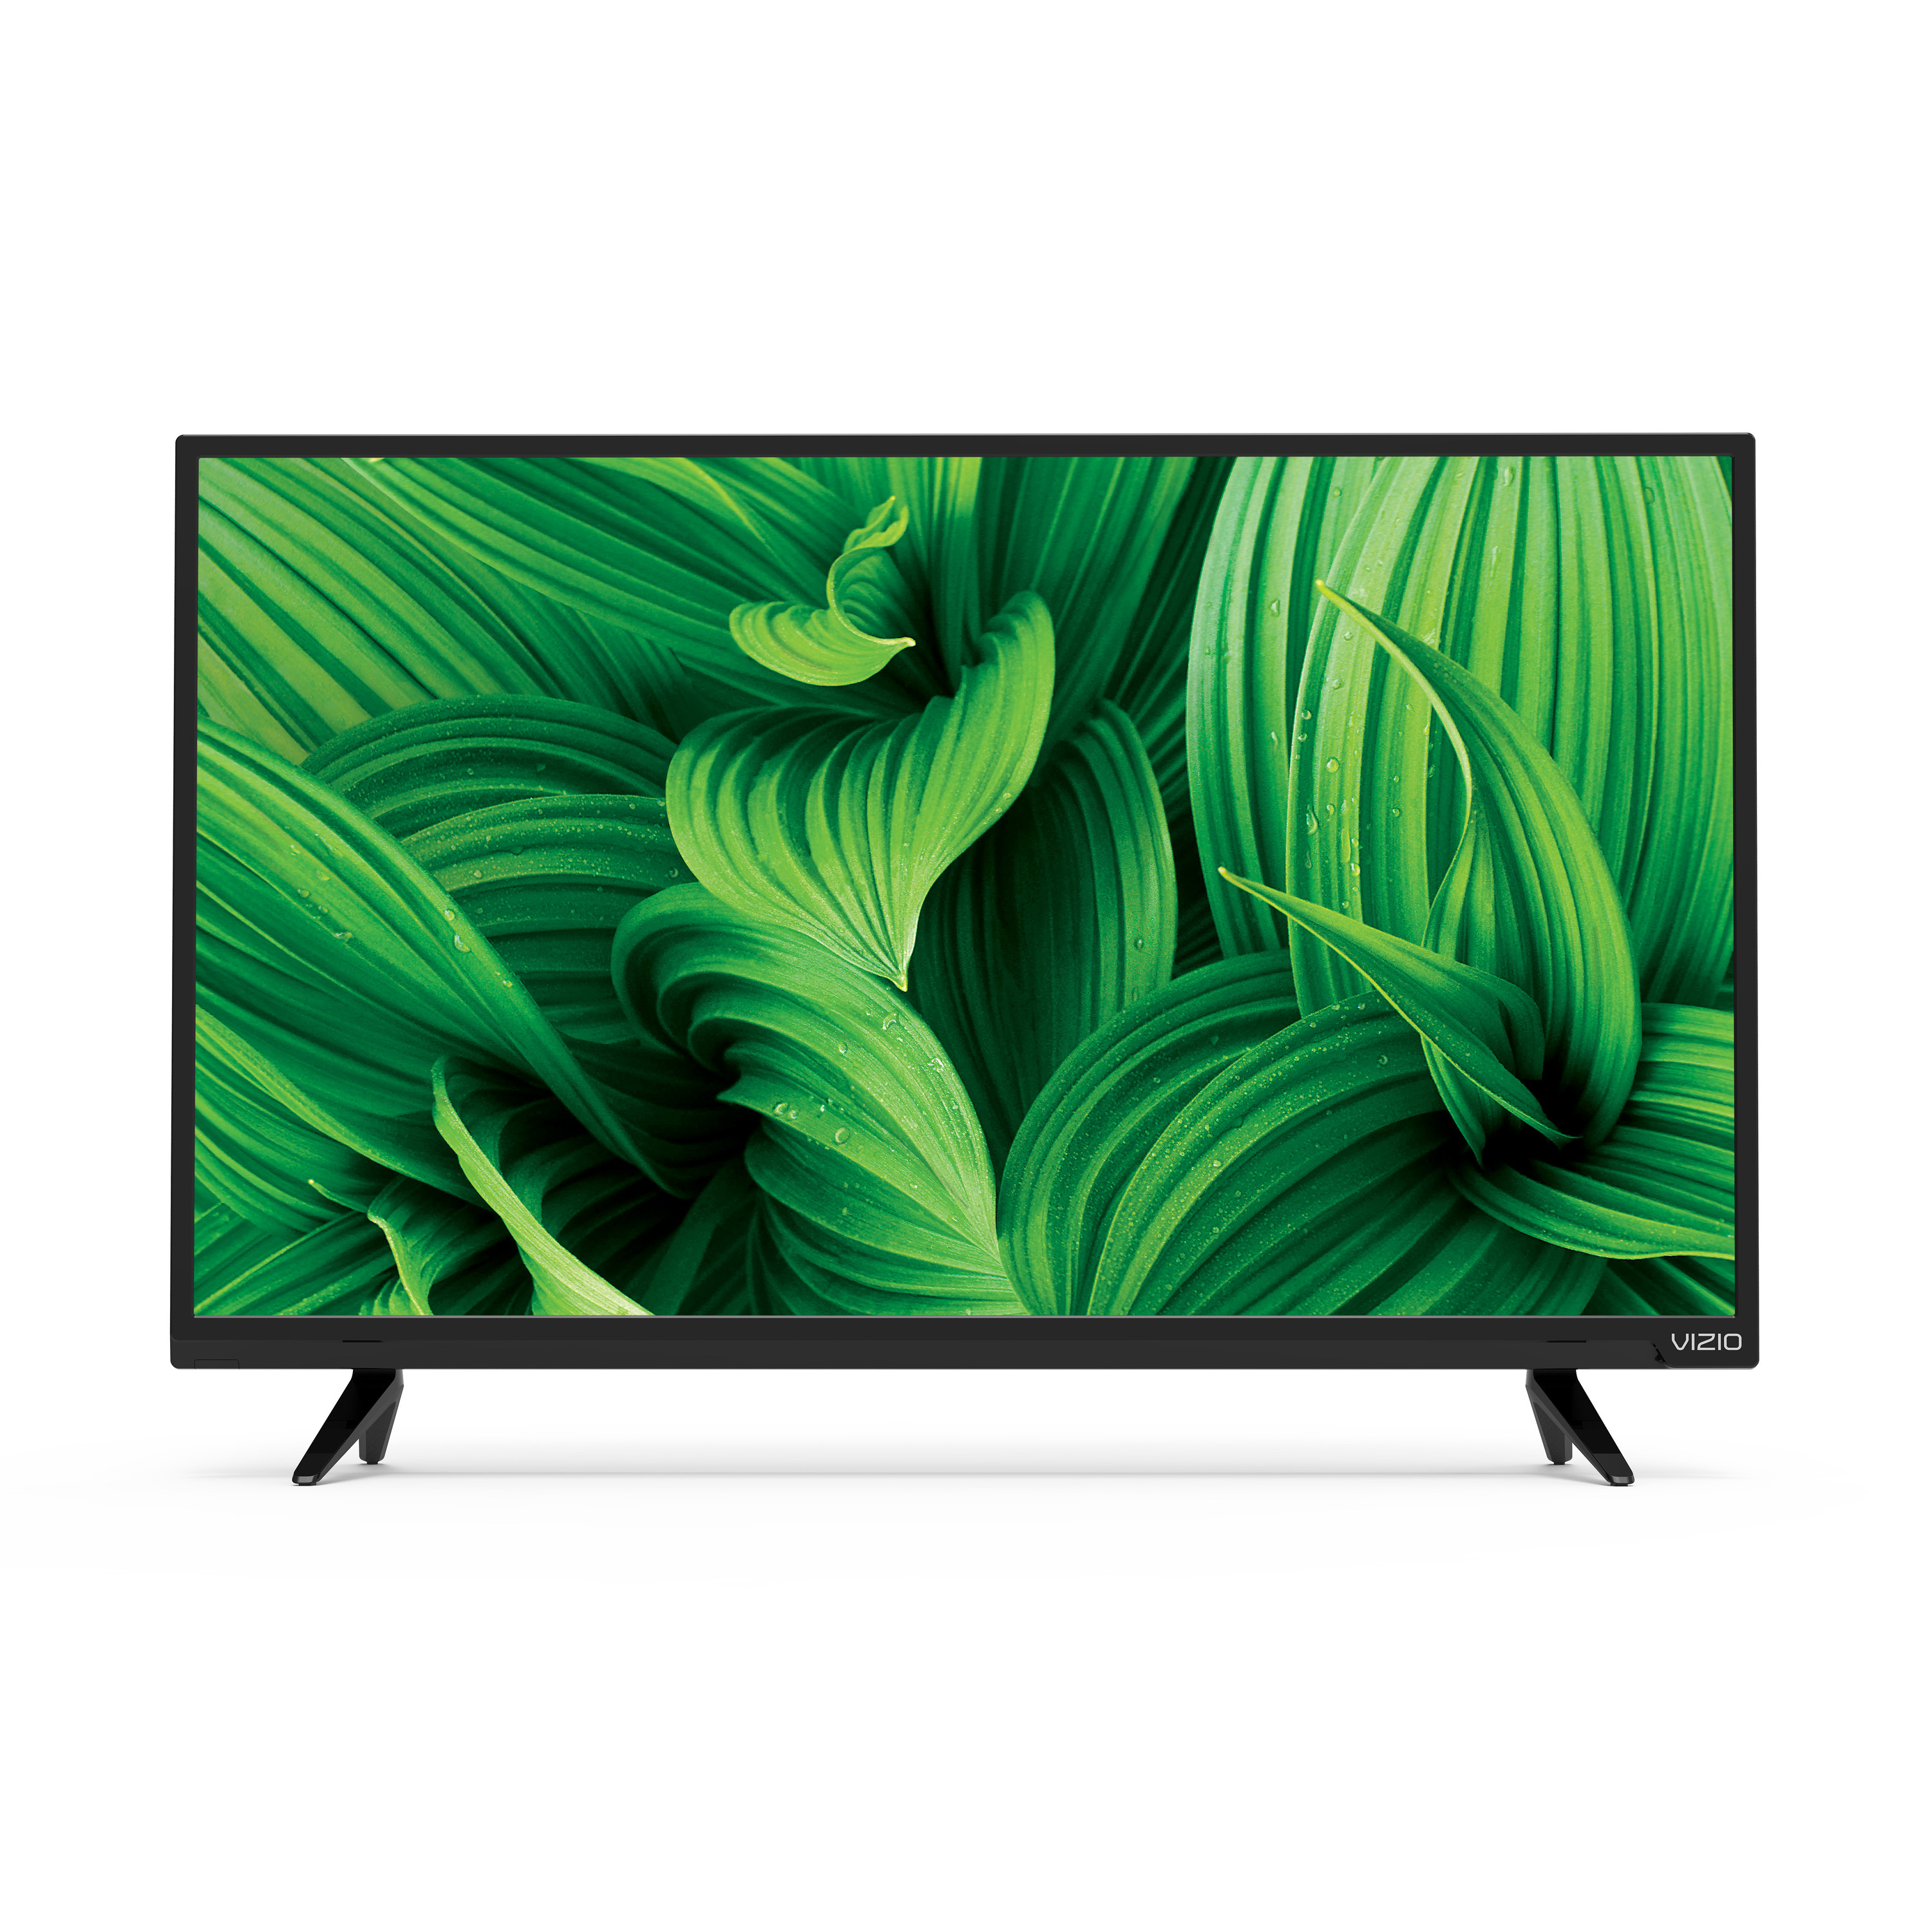 "VIZIO 32"" Class HD (720P) Full Array LED TV (D32hn-E4)"